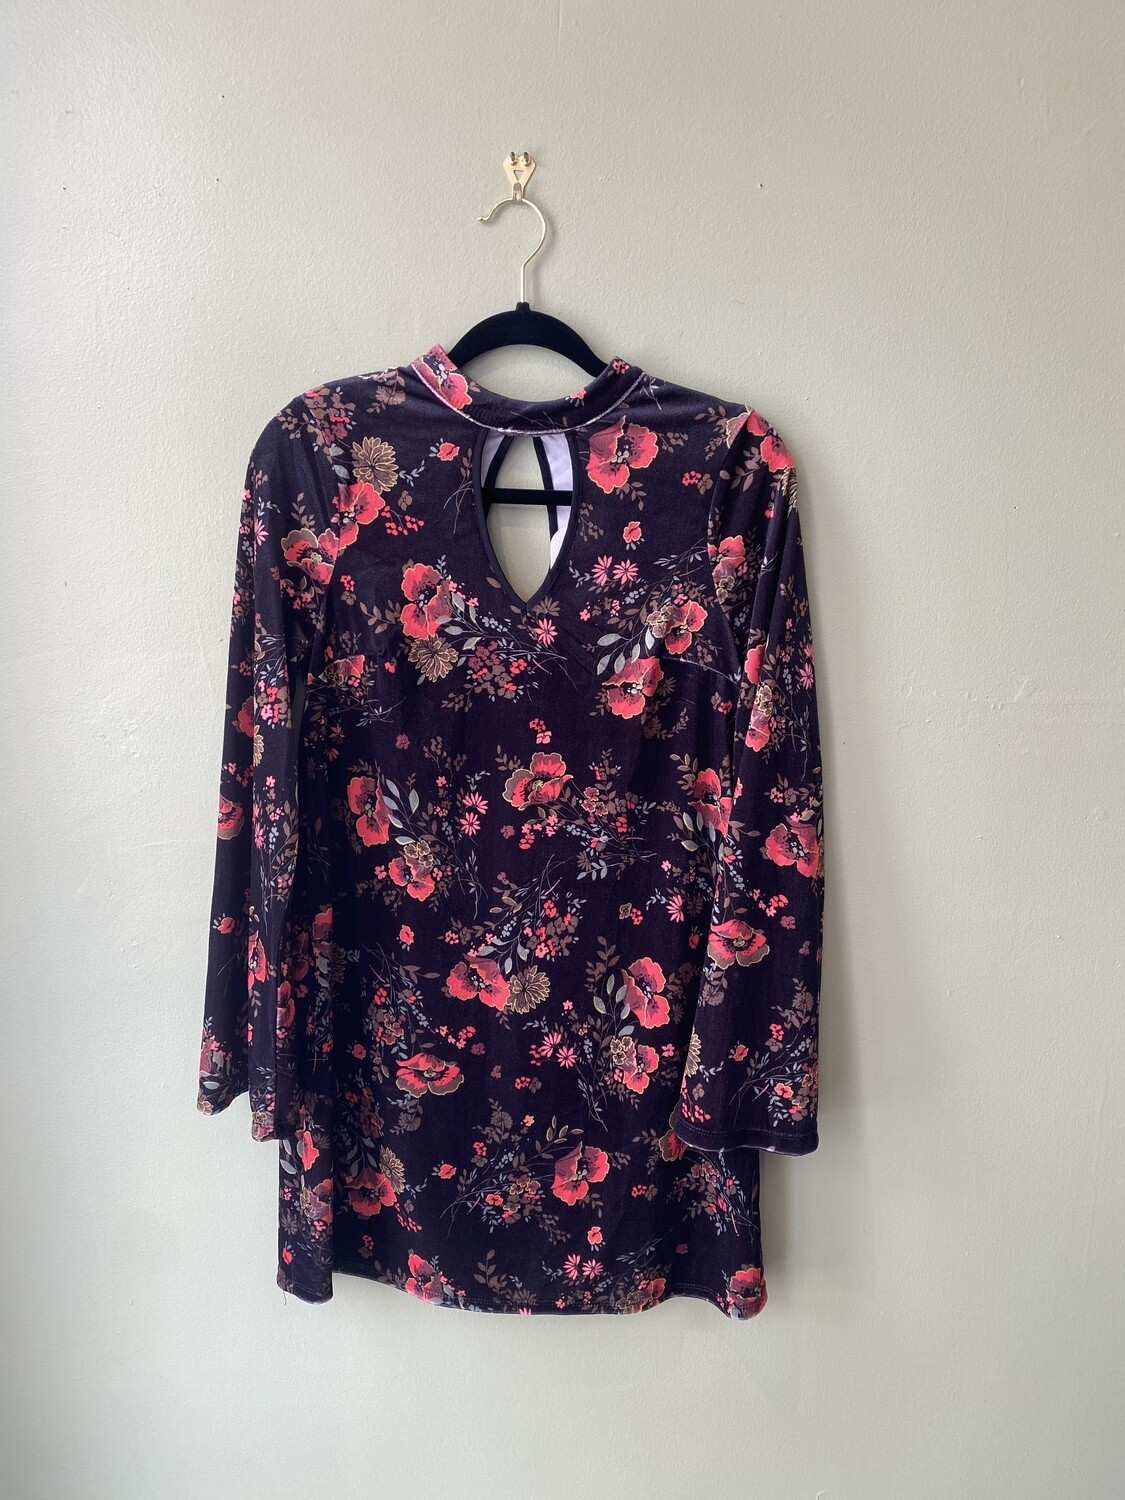 90s-inspired Floral Keyhole Dress, Size M